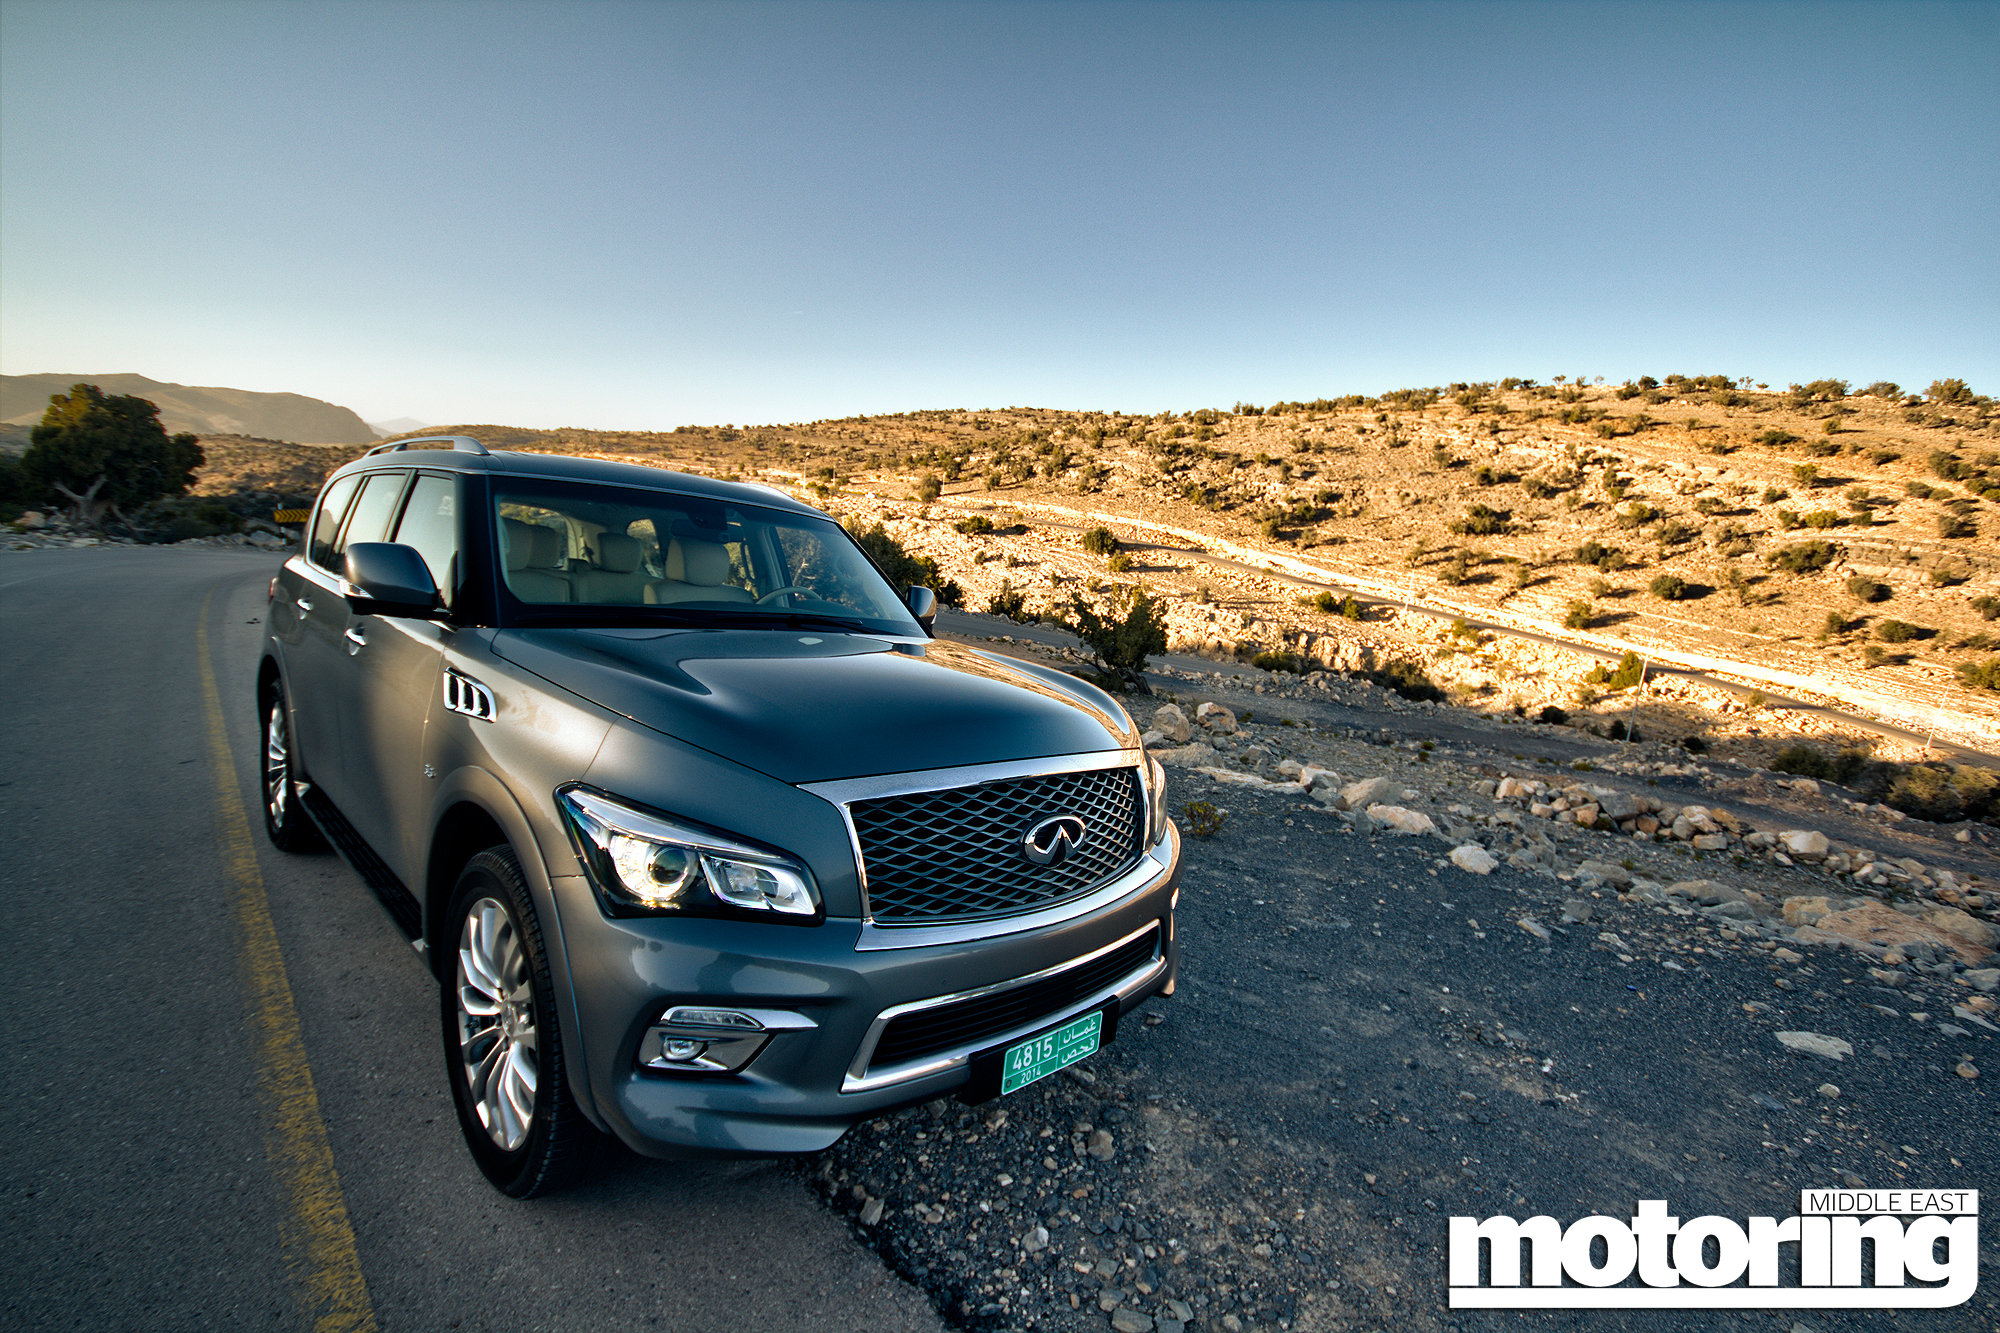 2015 infiniti qx80 reviewmotoring middle east car news reviews 2015 infiniti qx80 review vanachro Choice Image